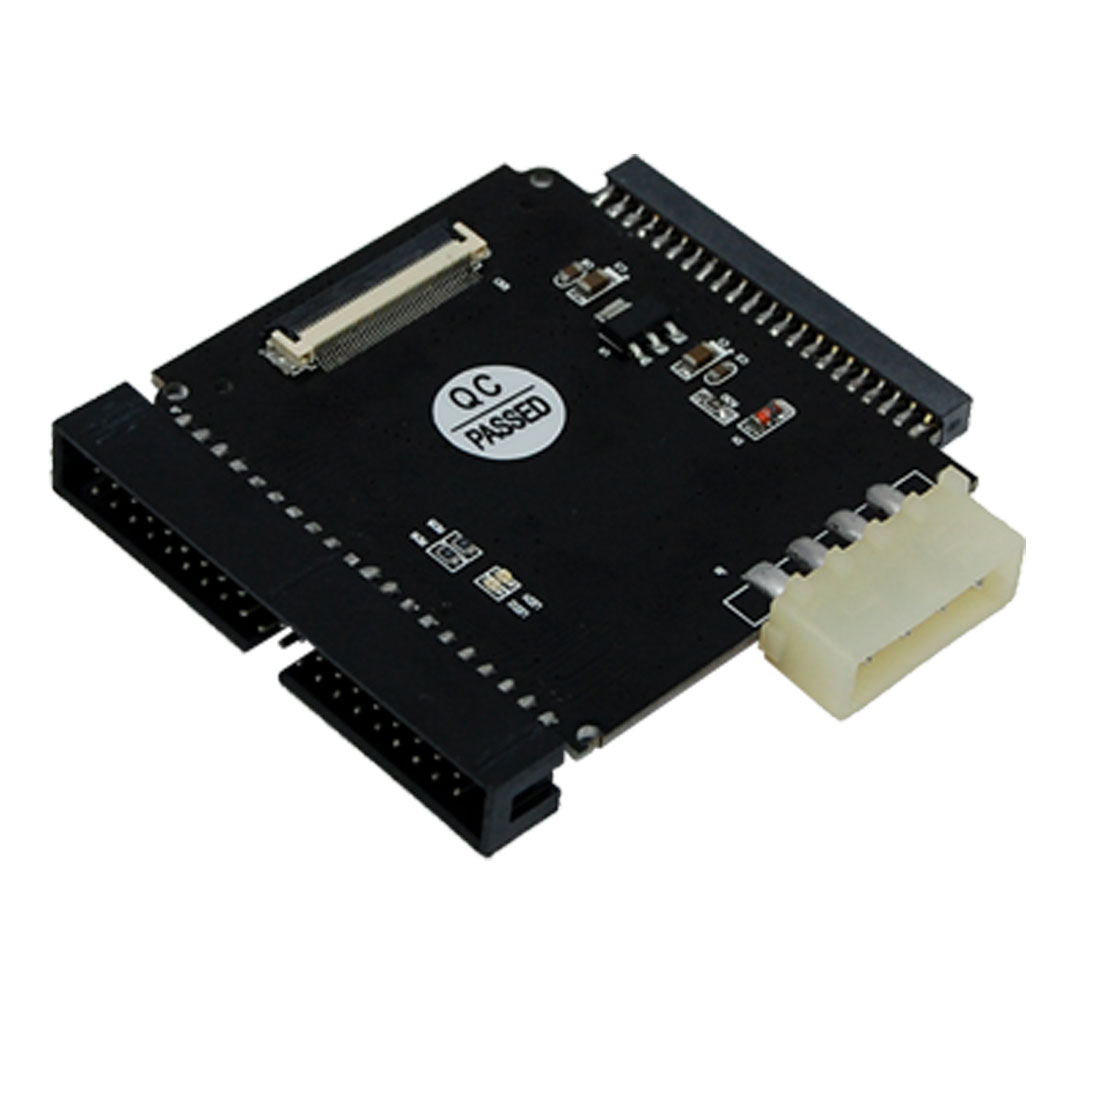 1.8 Inch ZIF or IDE HDD to 2.5 or 3.5 IDE Adapter Convertor